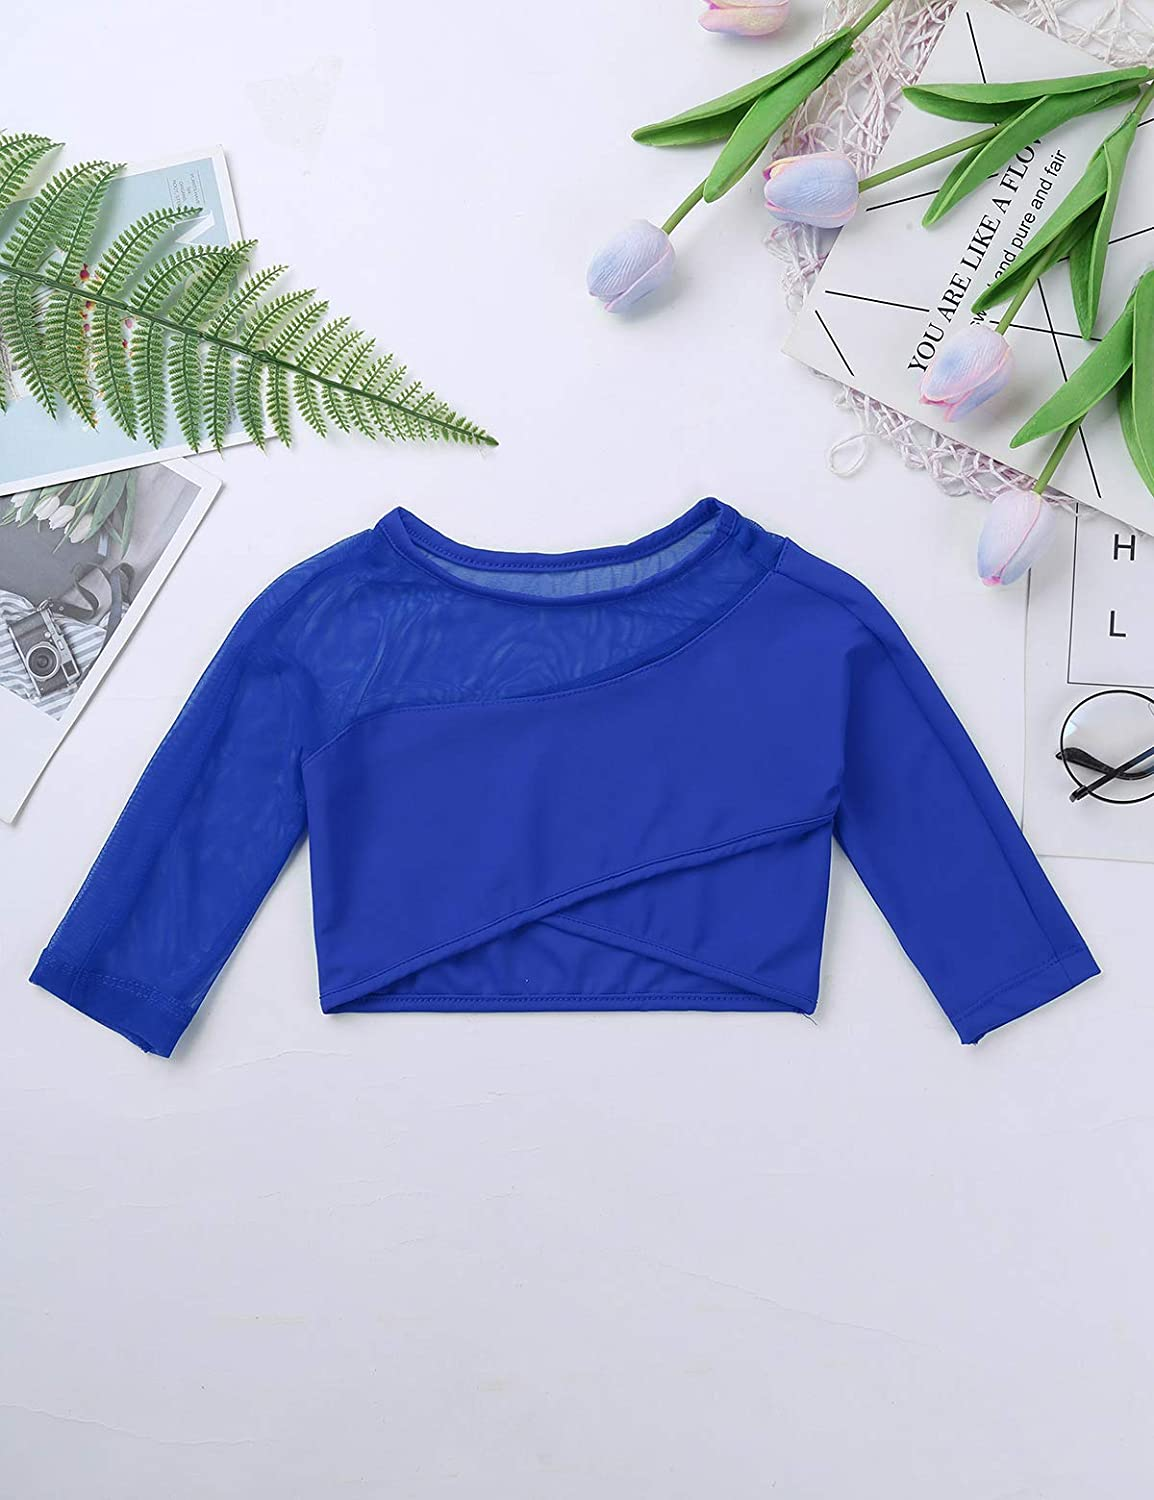 Agoky Kids Girls Long Sleeves Sports Dance Crop Top Outfit for Ballet Gymnastics Leotard Stage Performance Dancewear